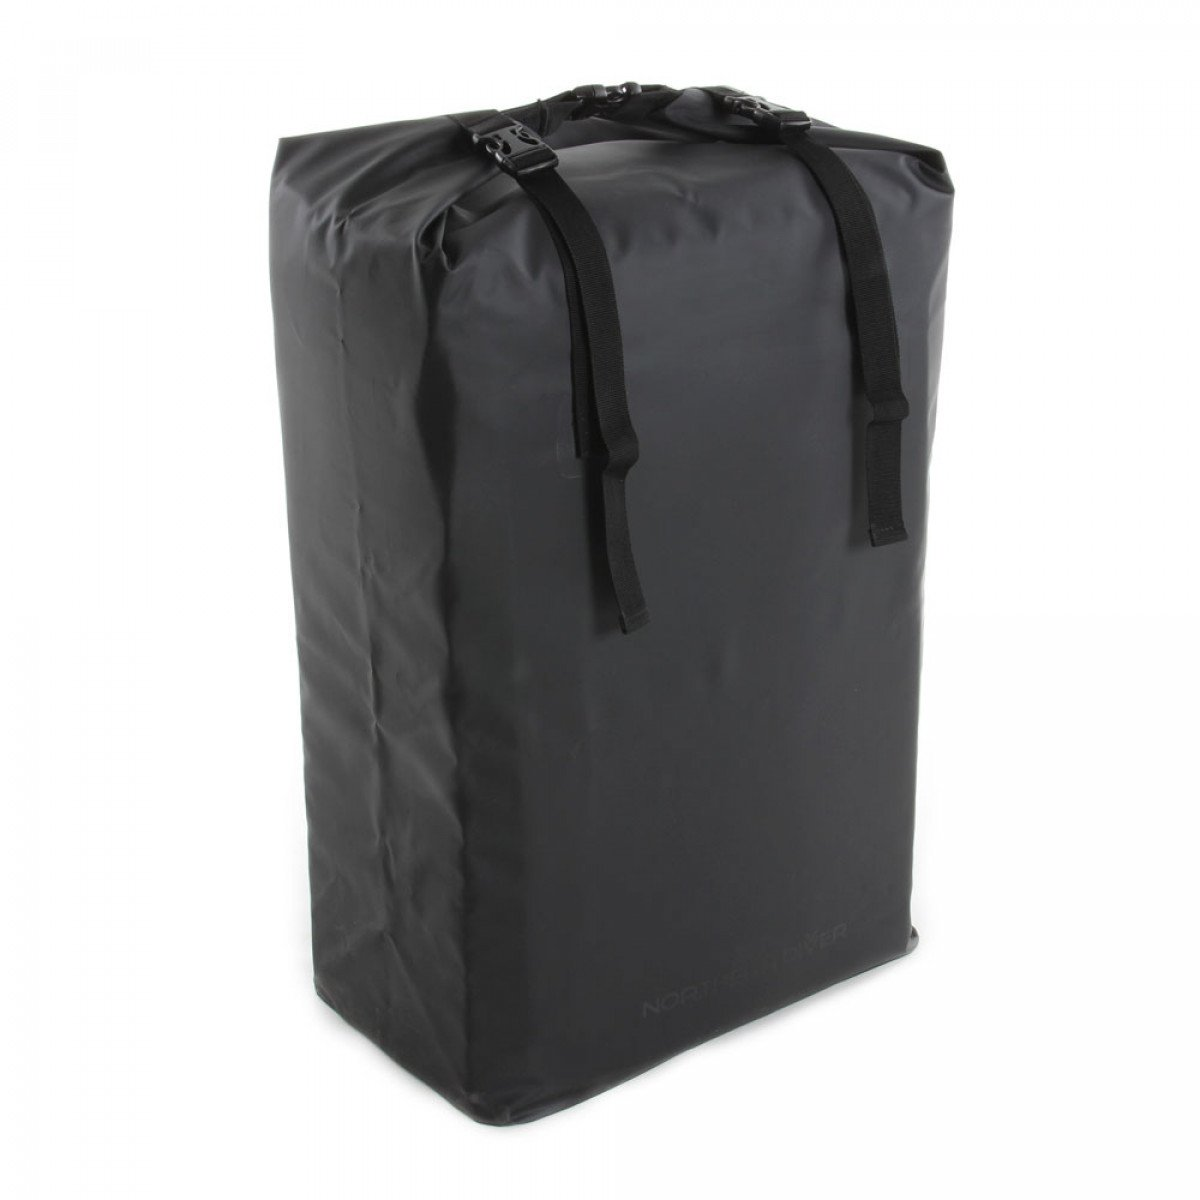 0d5354be8ed2f 78L Voyager Roll Top Dry Bag - Dry Sacks - Waterproof Pouches ...